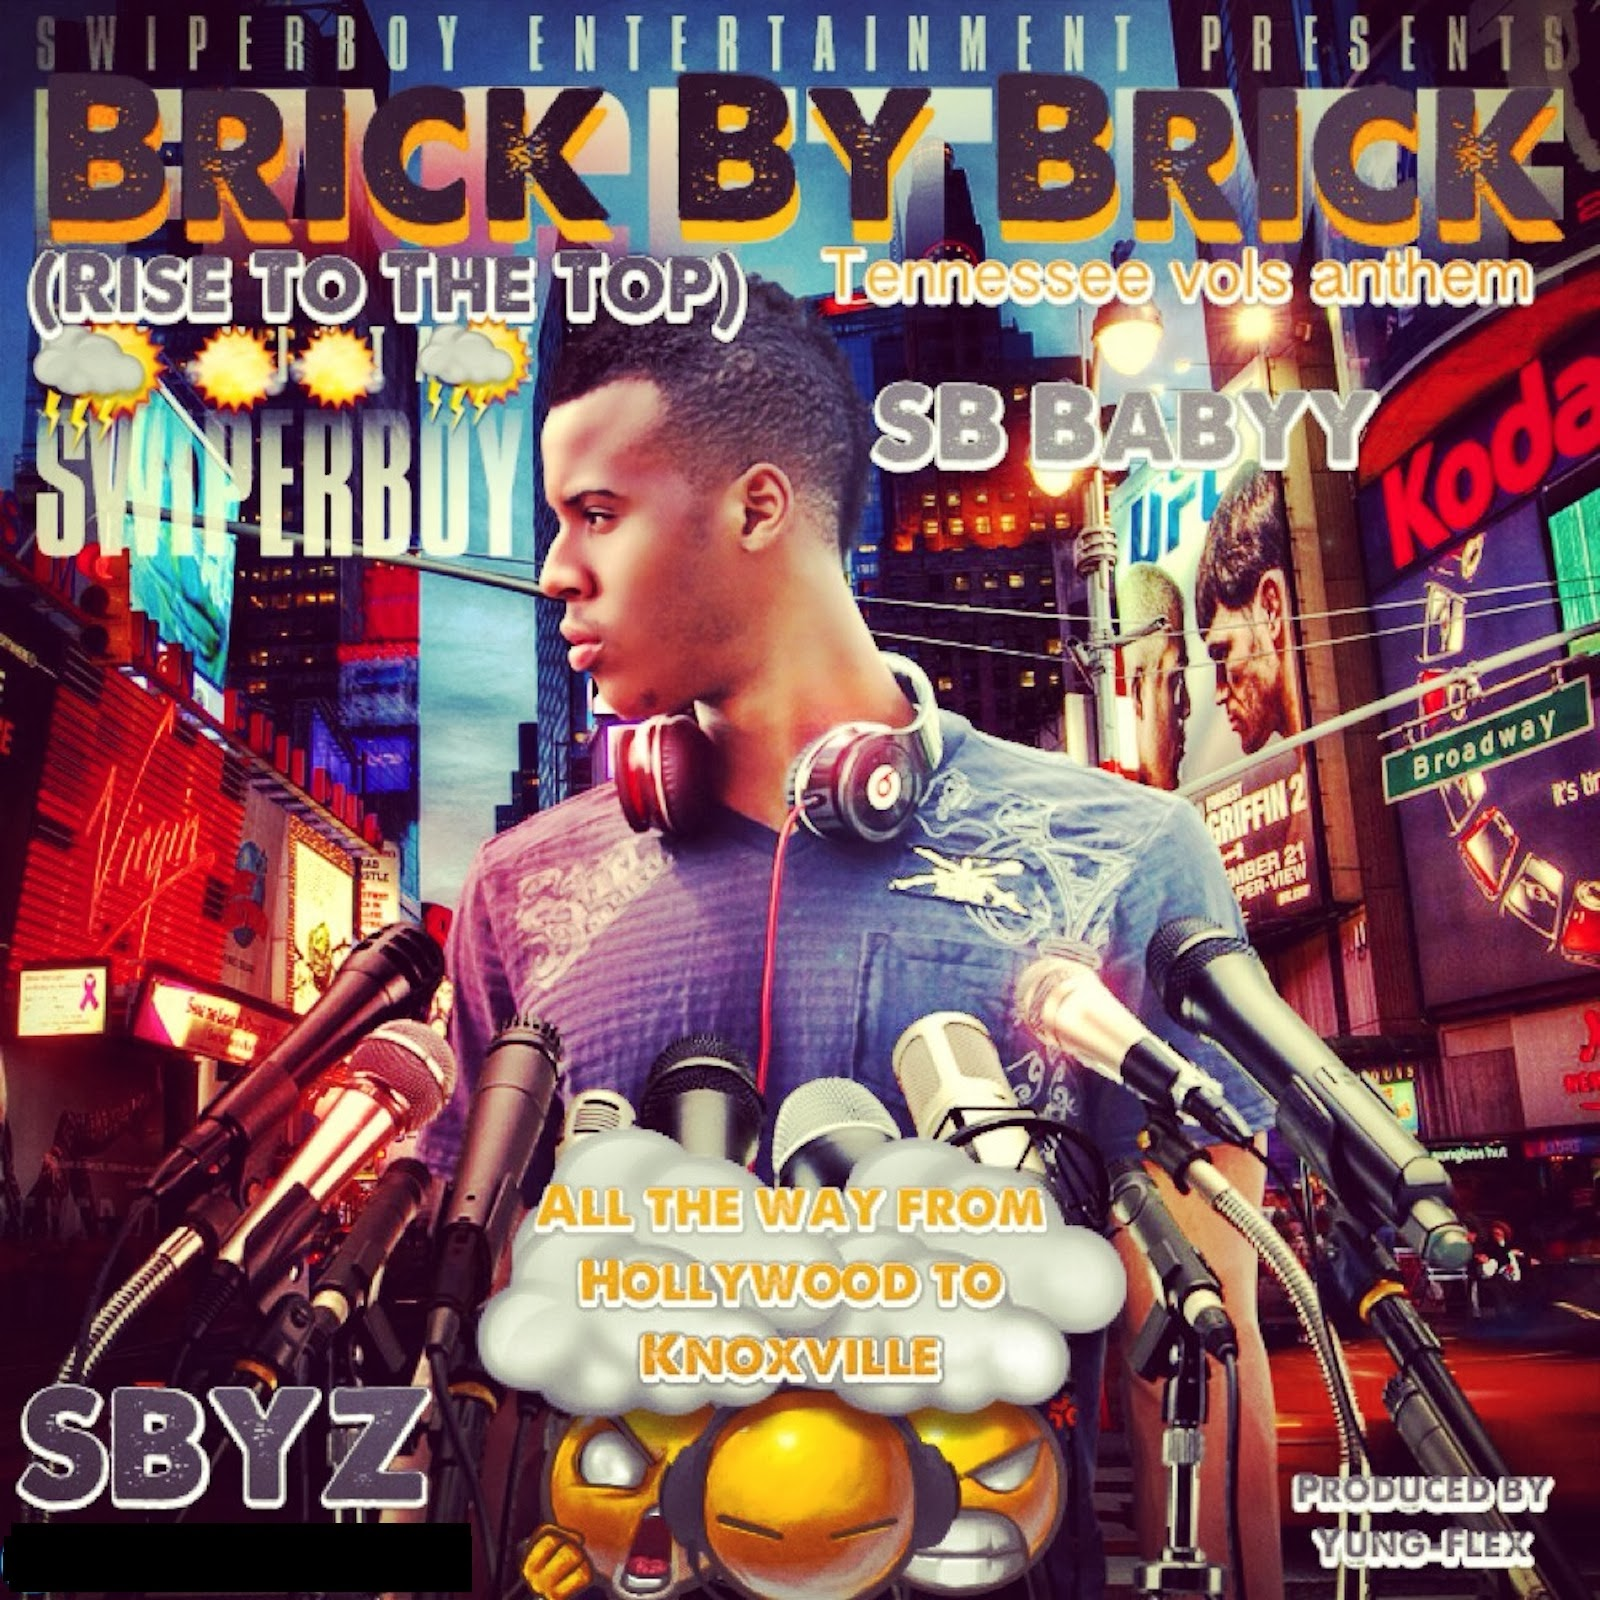 Brick By Brick - Swiperboy